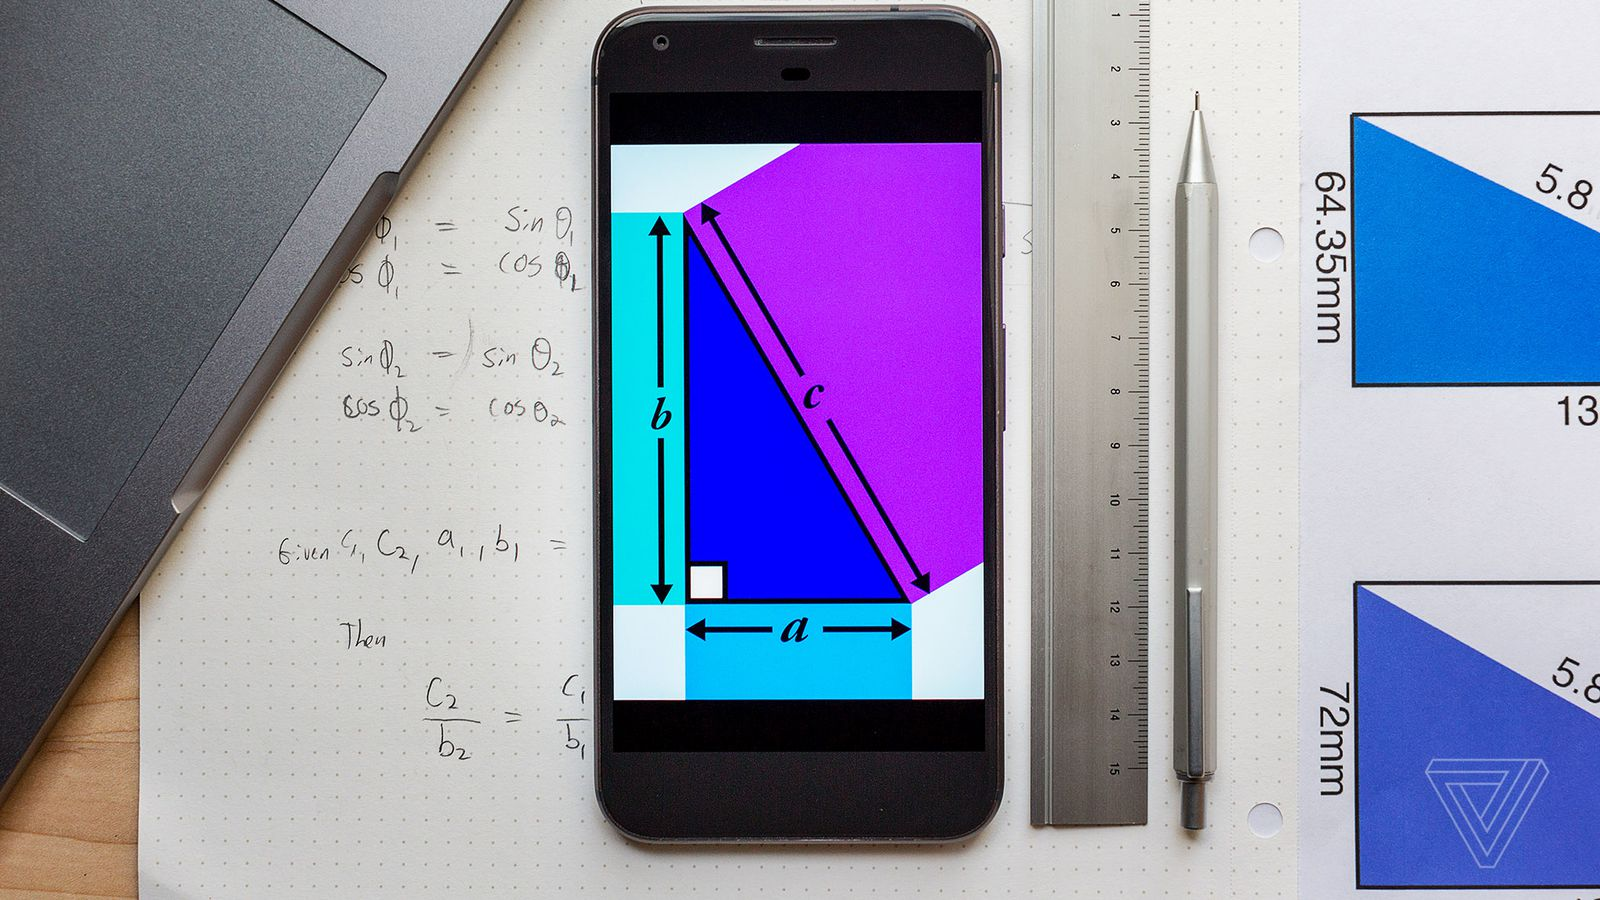 theverge.com - We're gonna need Pythagoras' help to compare screen sizes in 2017